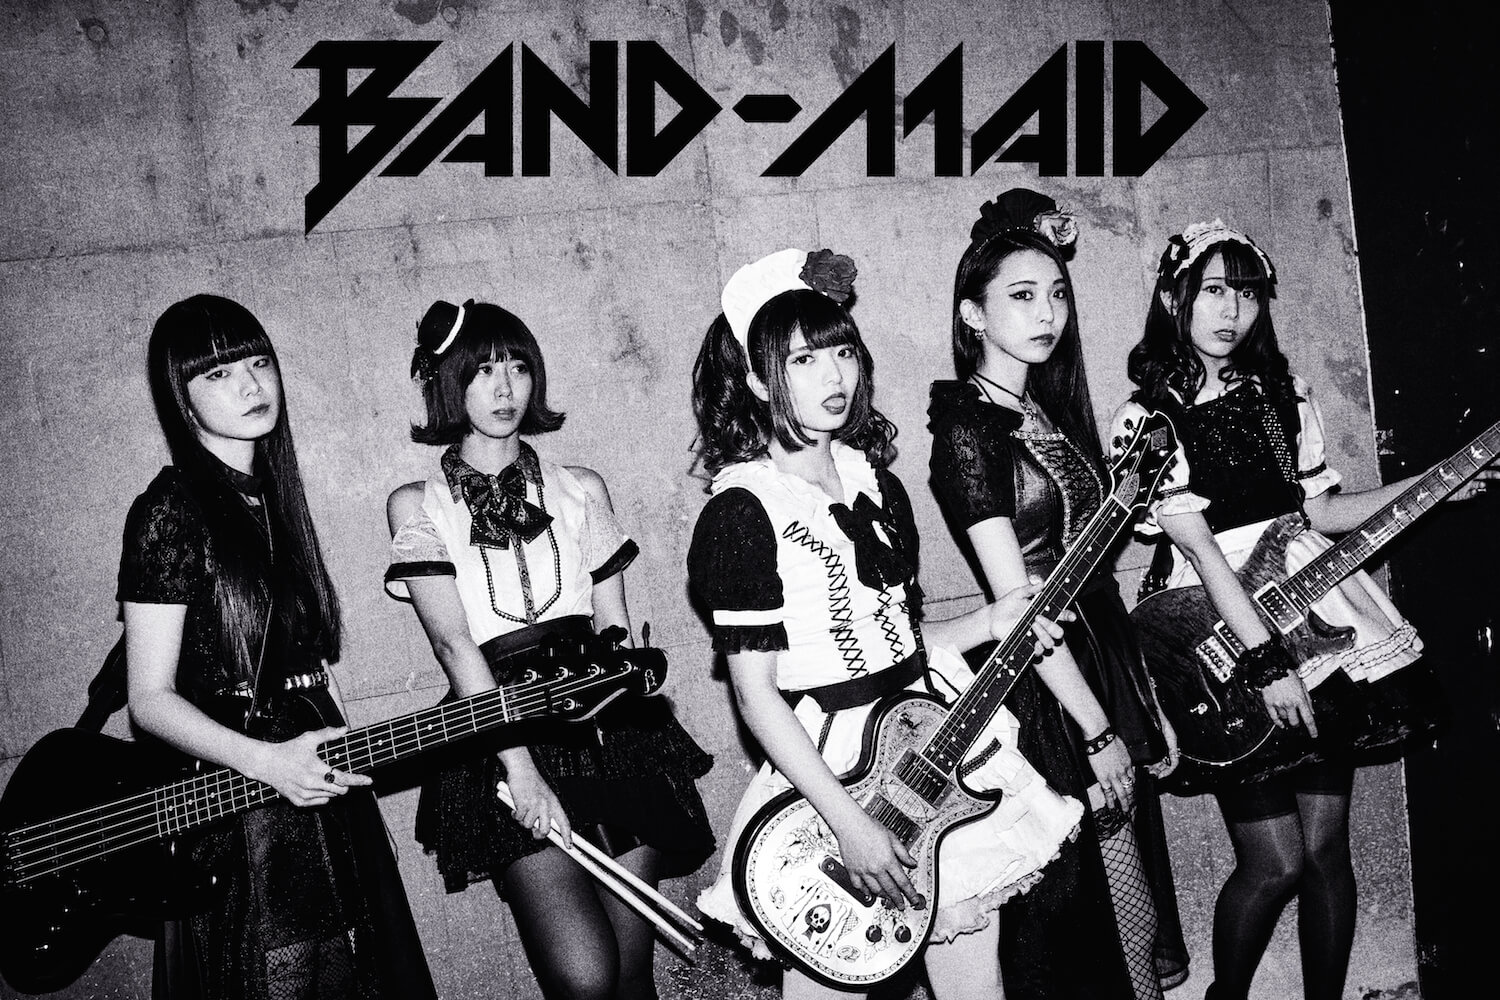 BAND-MAID New Single 'start over' to be Released on July 25